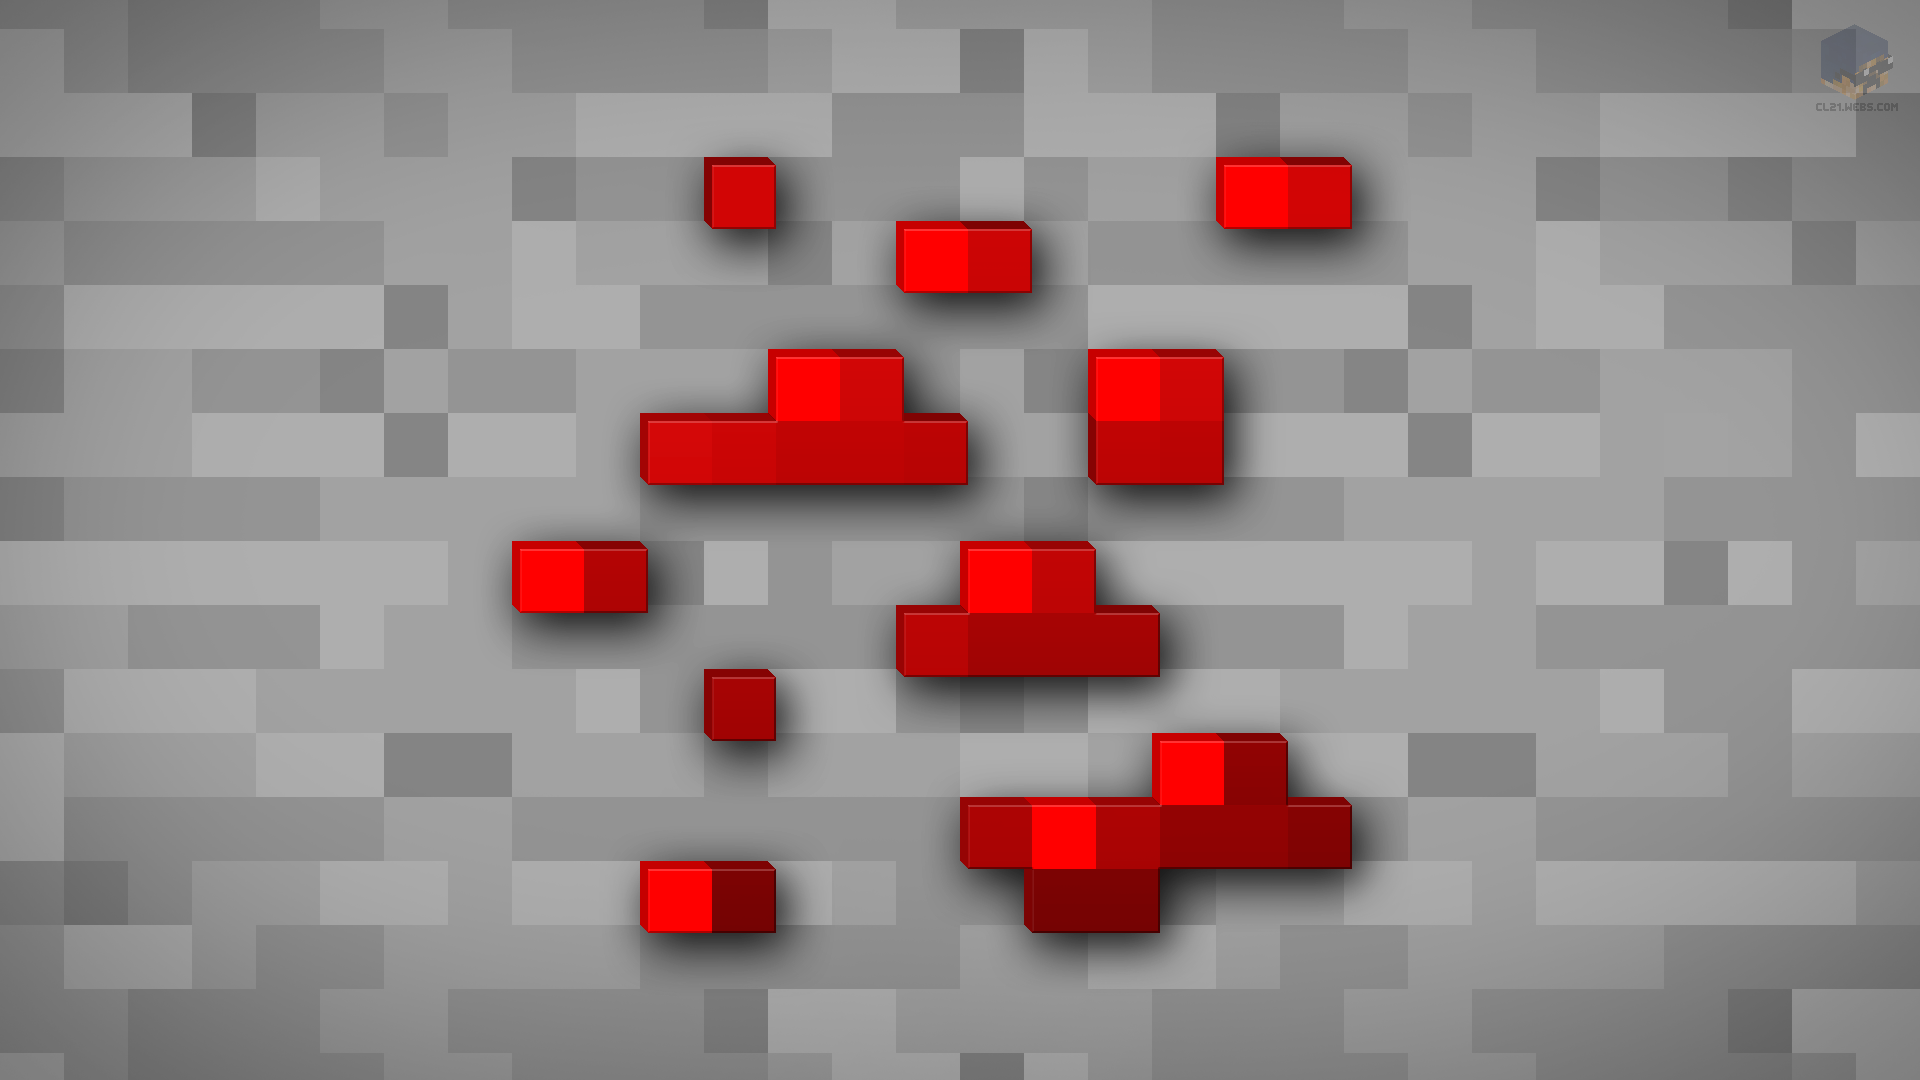 Red Stone Texture : Minecraft shaded redstone ore wallpaper by chrisl on